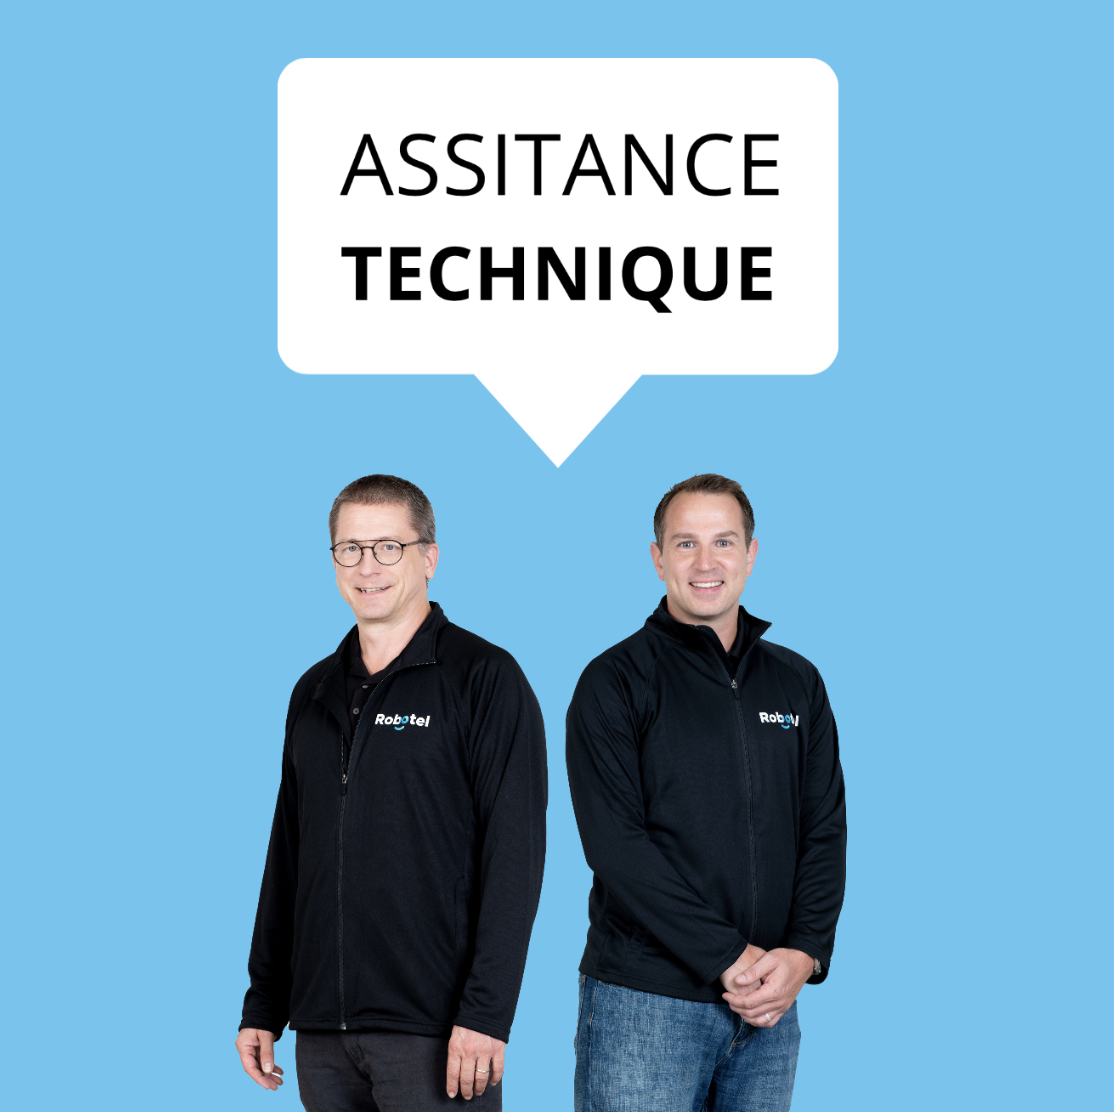 Assistance technique - Robotel